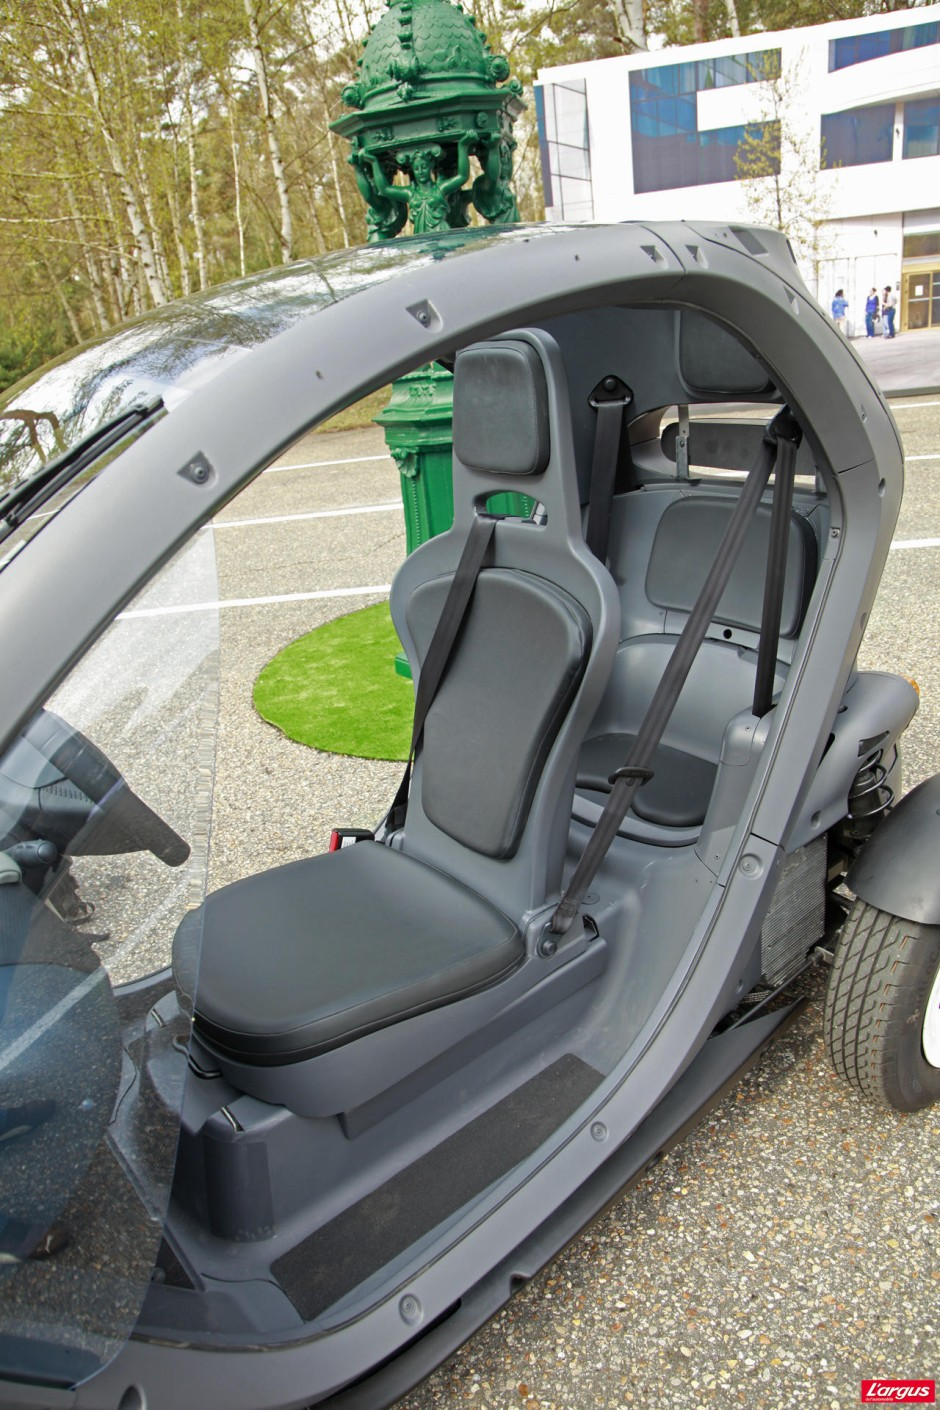 renault twizy le bon format lectrique photo 4 l 39 argus. Black Bedroom Furniture Sets. Home Design Ideas